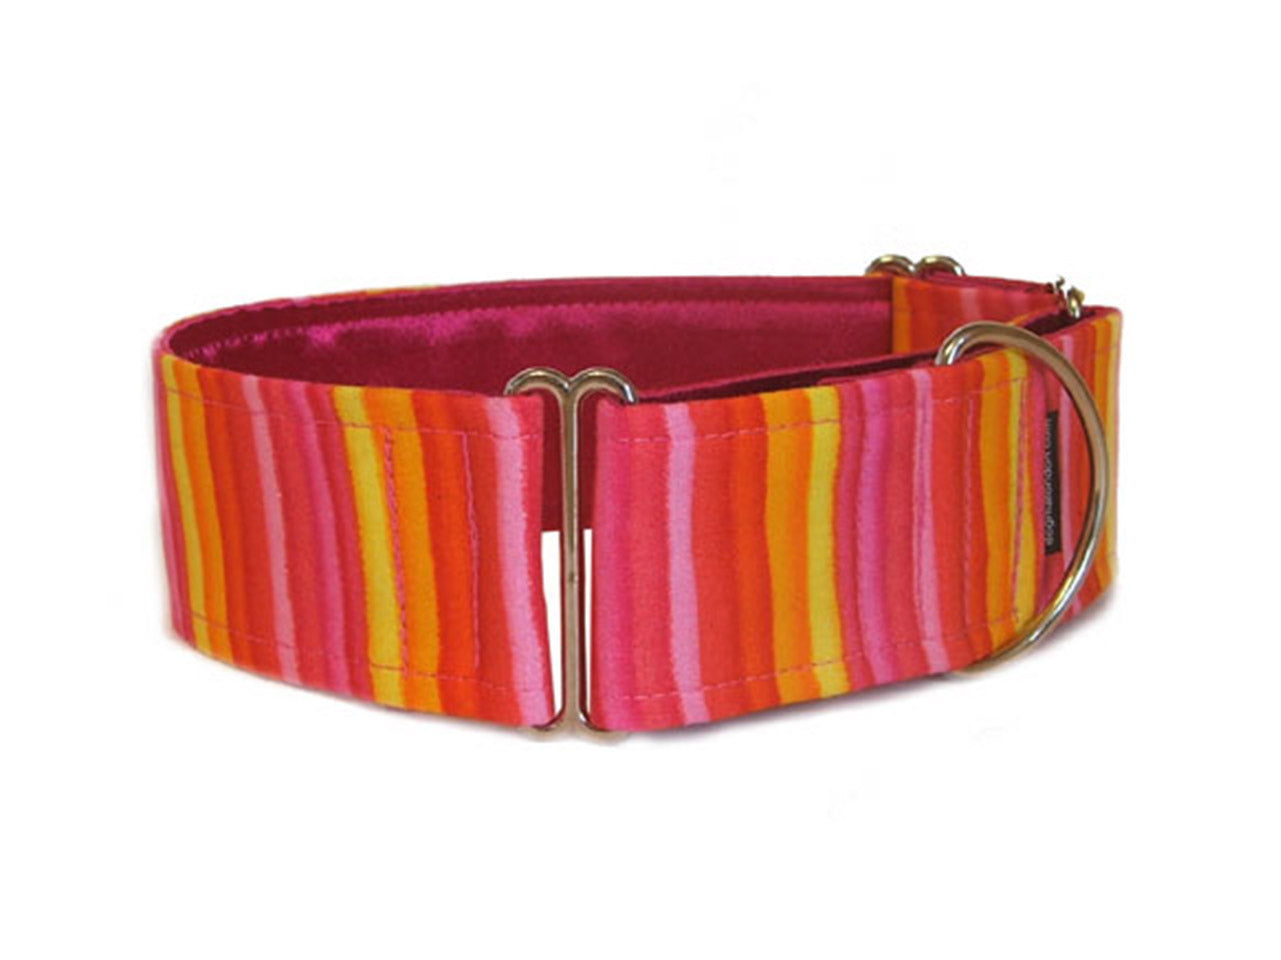 Bright sunny stripes in shades of pink and yellow will have your pooch ready for a day at the beach or pool!